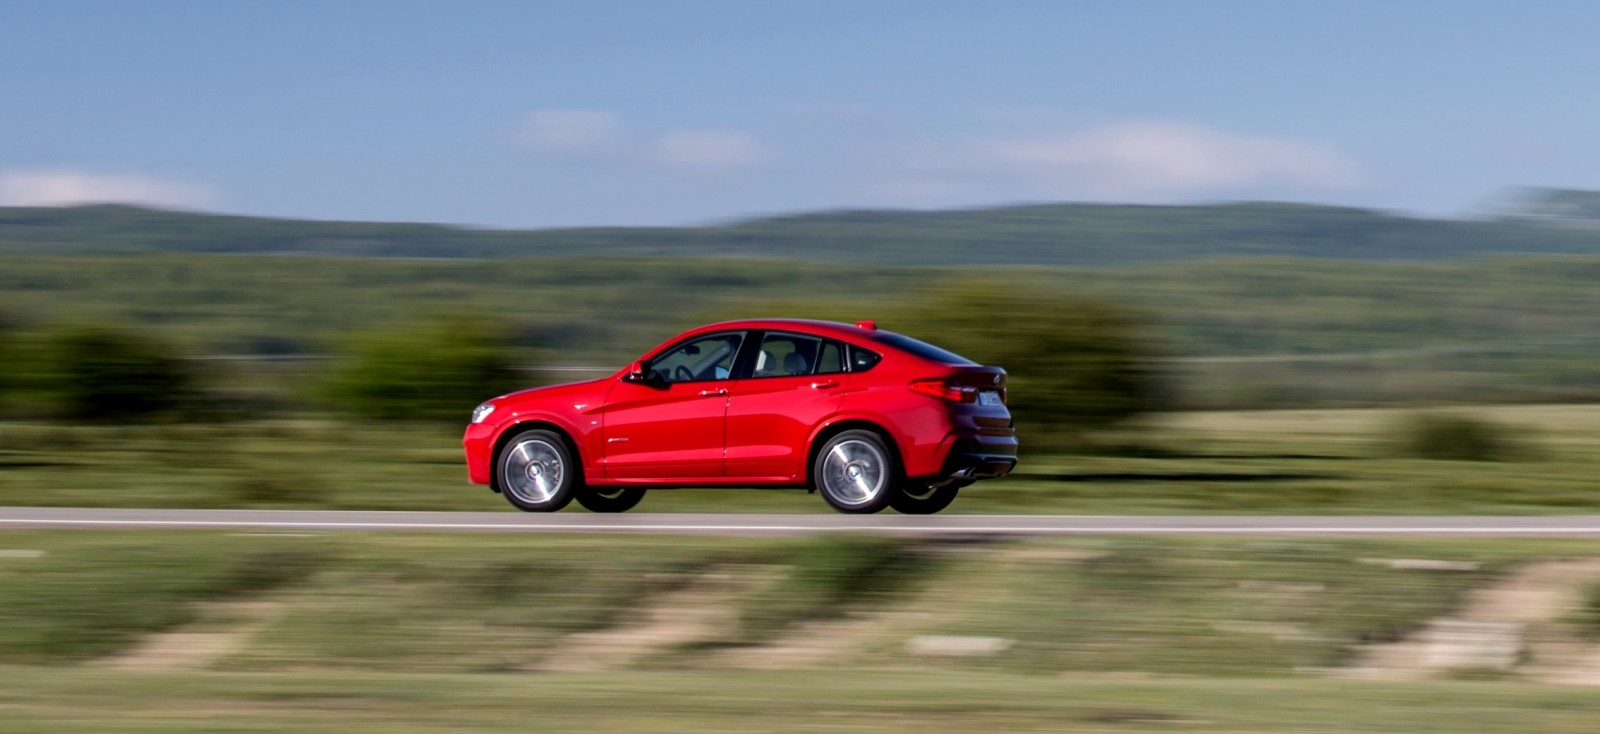 Update2 Debut Photos - 2015 BMW X4 Arriving Now to USA BMW Dealers 65